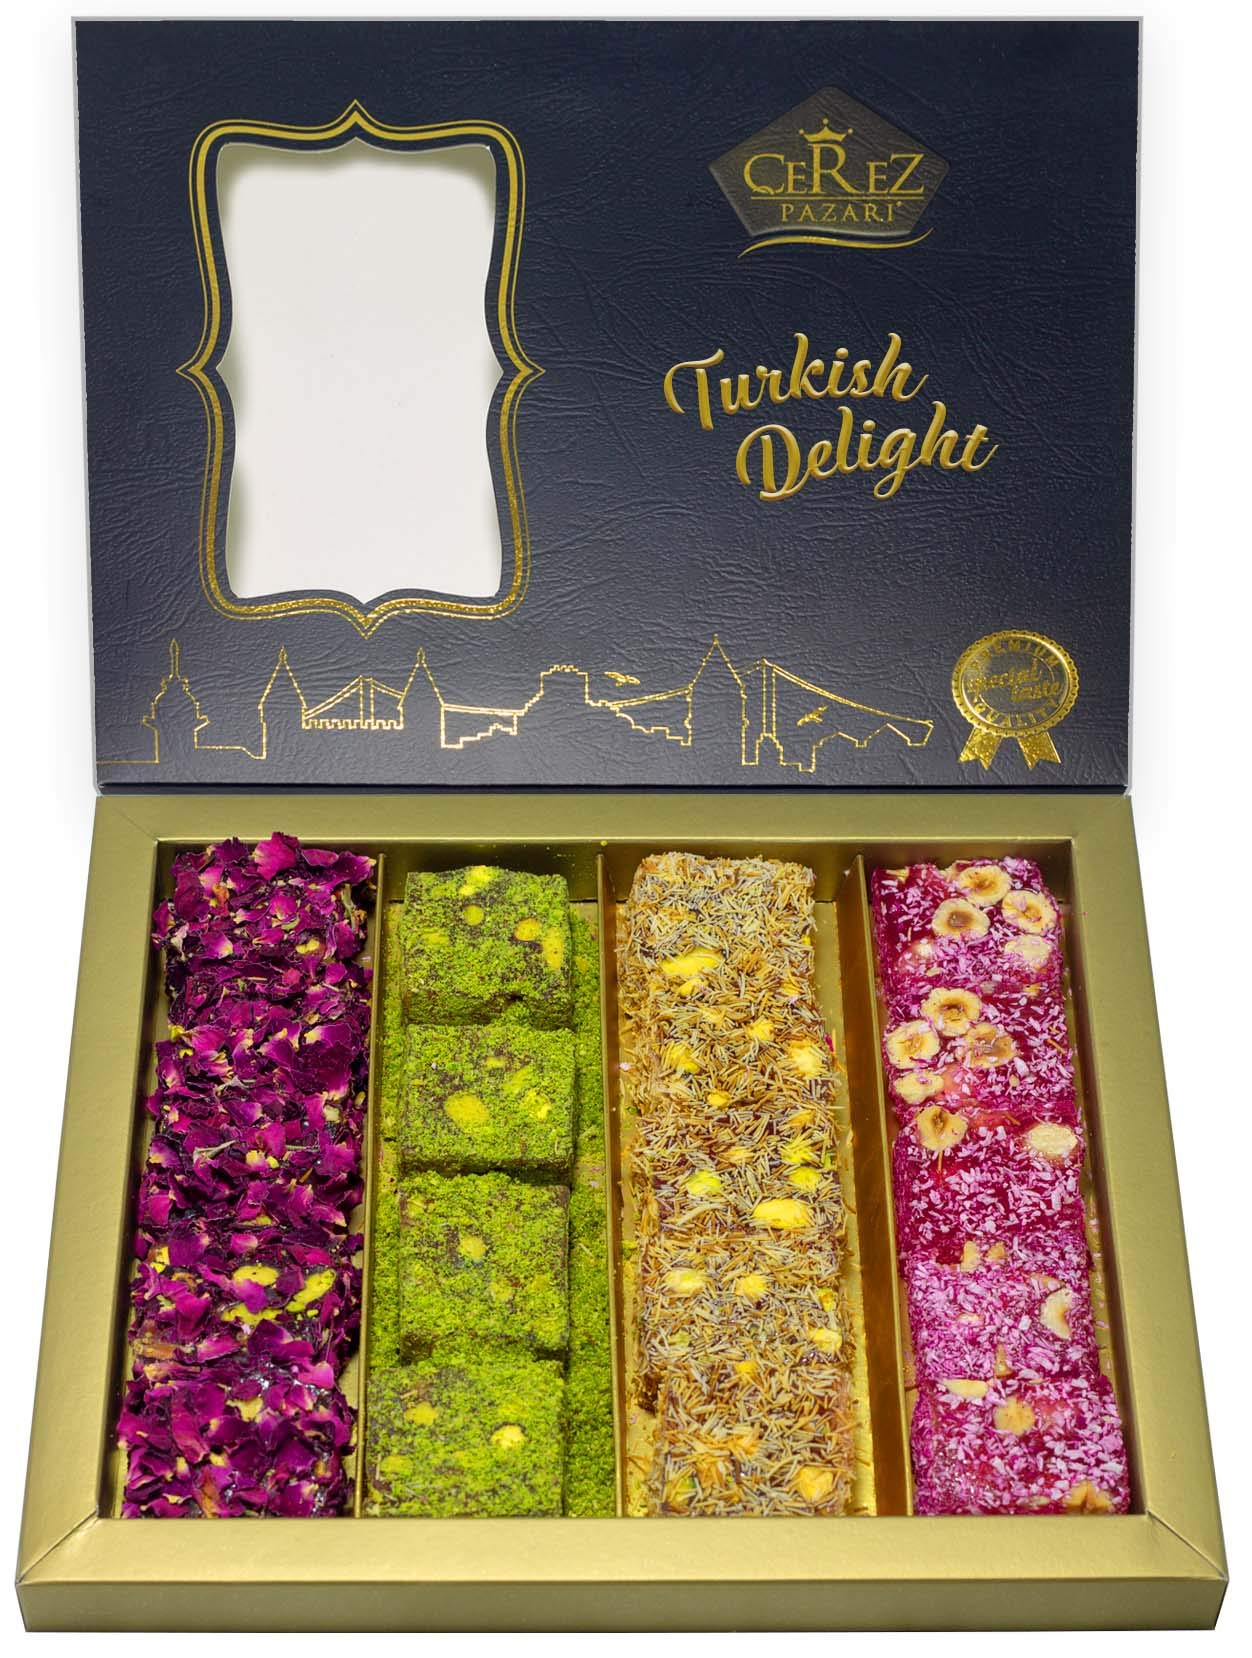 Turkish Delight Luxury Assorted %100 Hand Made Gourmet Gift Box Fantastic Rose & Pomegranate Flavor Experience With Pistachio (16-22 Pcs) 17 oz by Cerez Pazari